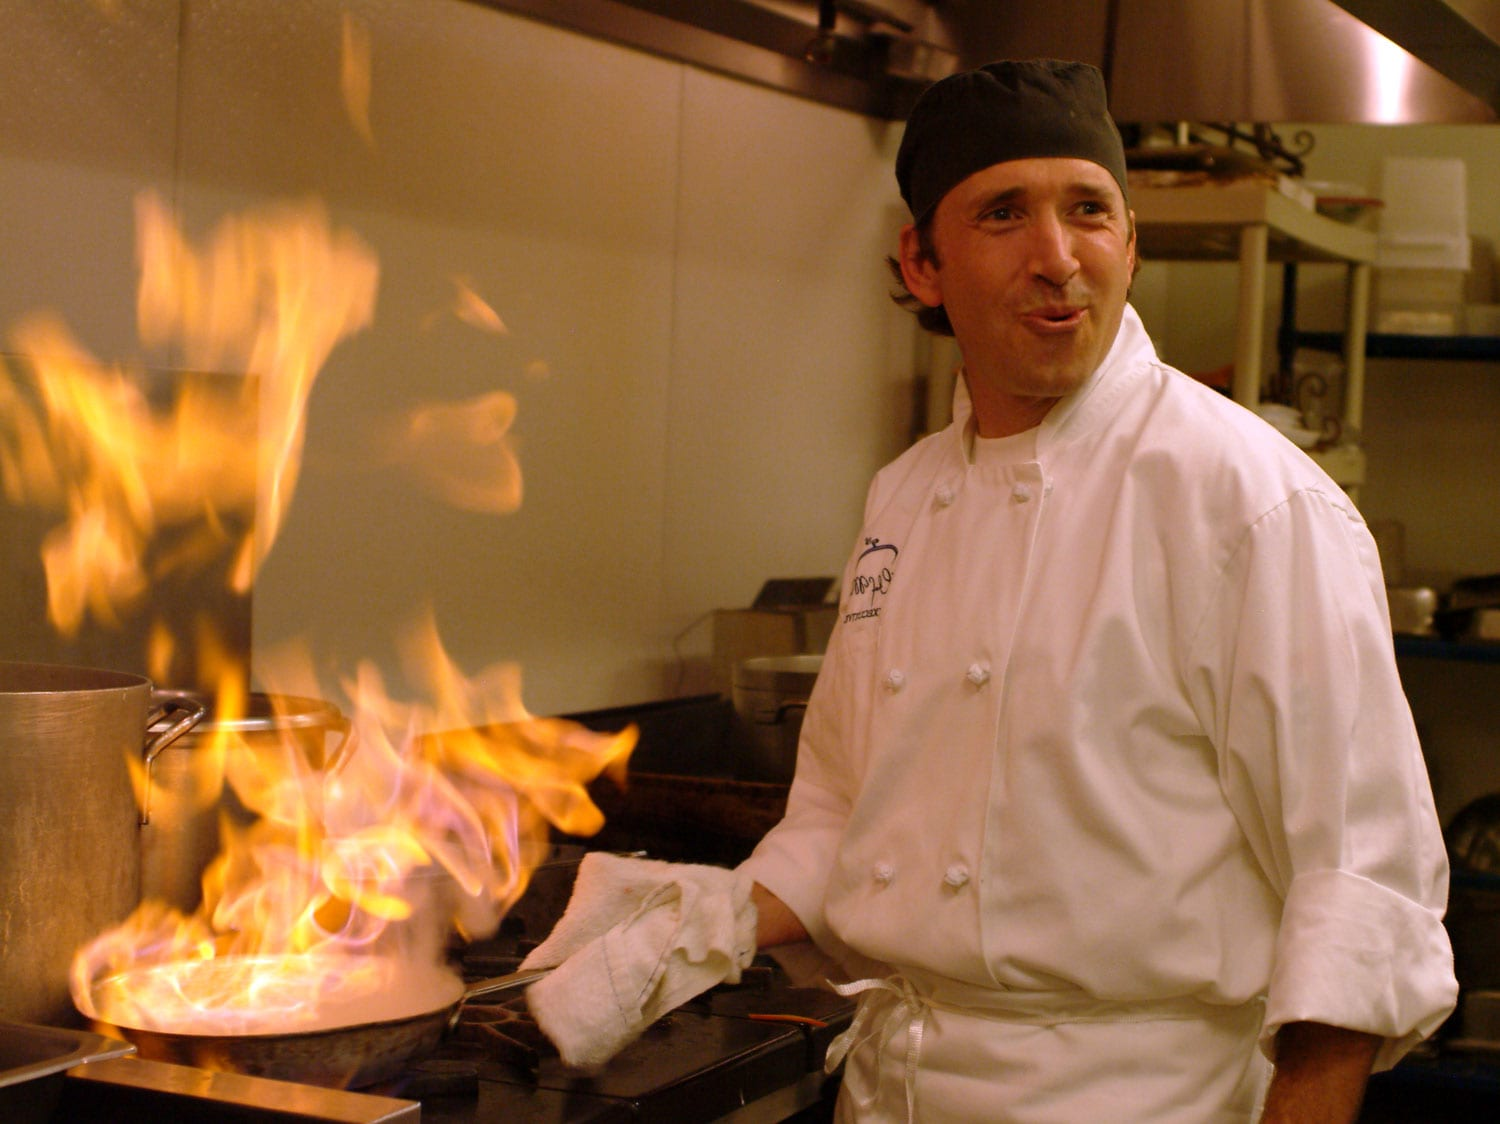 Chef Michael McKnight plays with fire